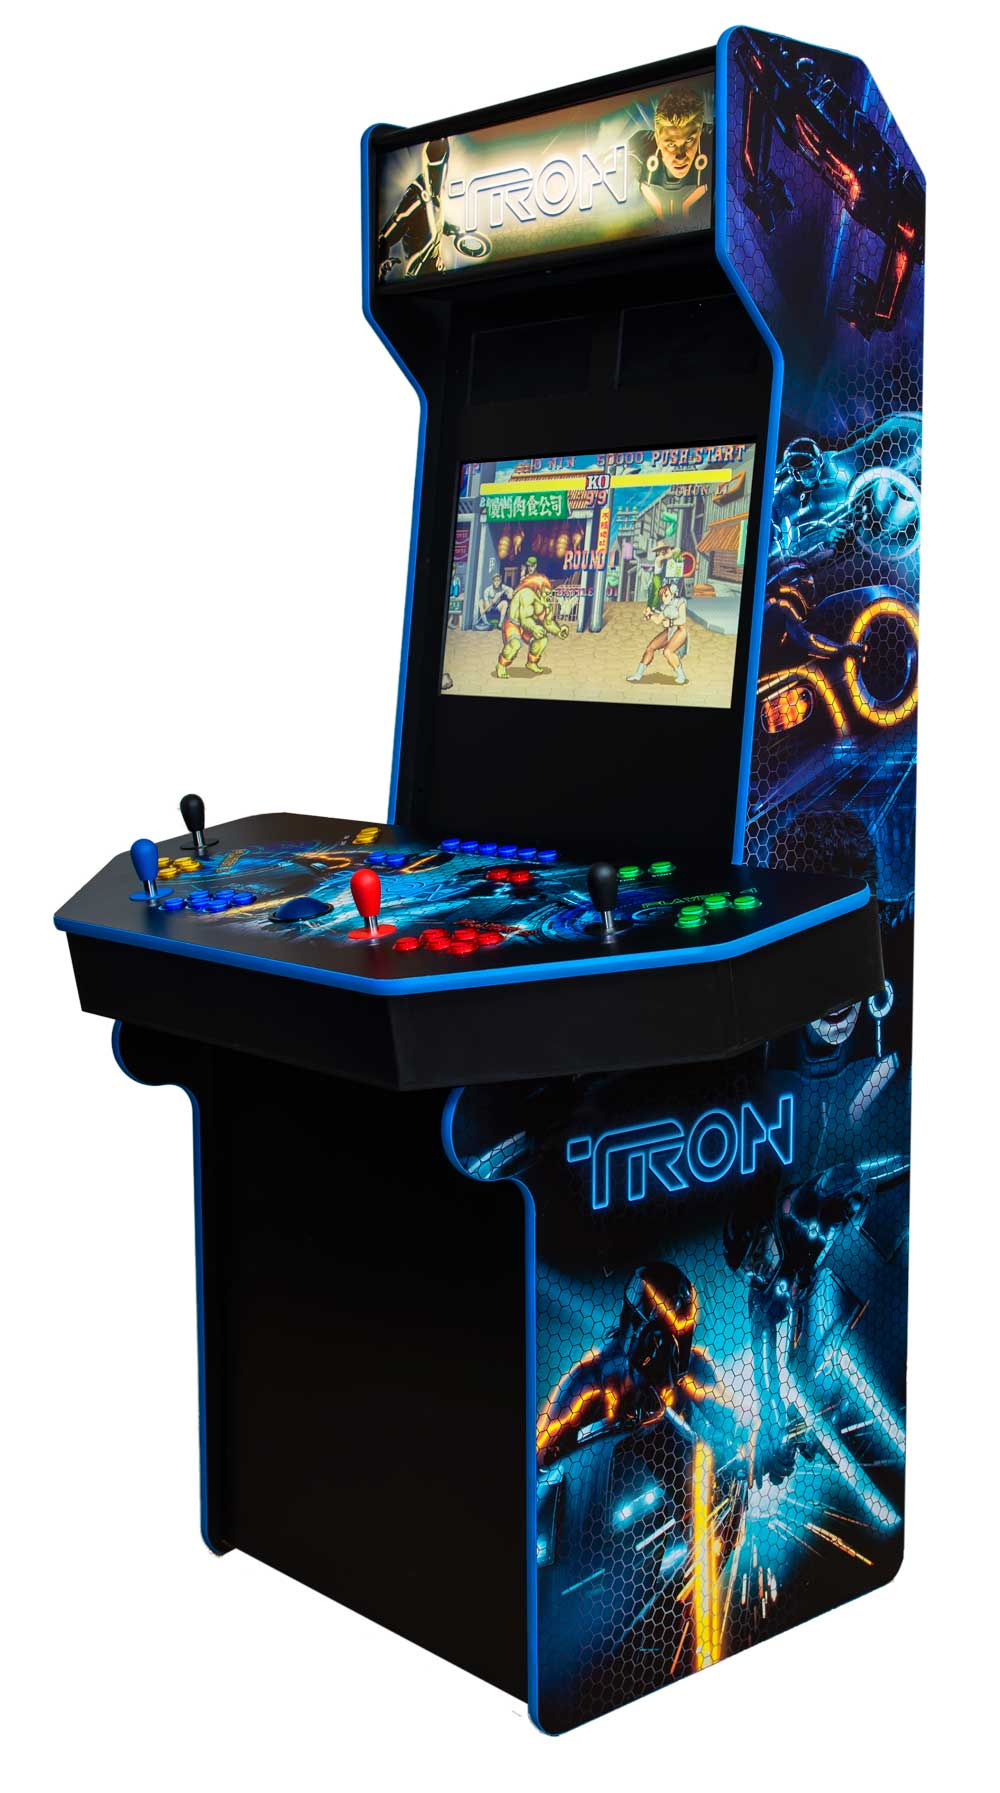 custom home arcade cabinets for up to four players ultimate home arcade. Black Bedroom Furniture Sets. Home Design Ideas